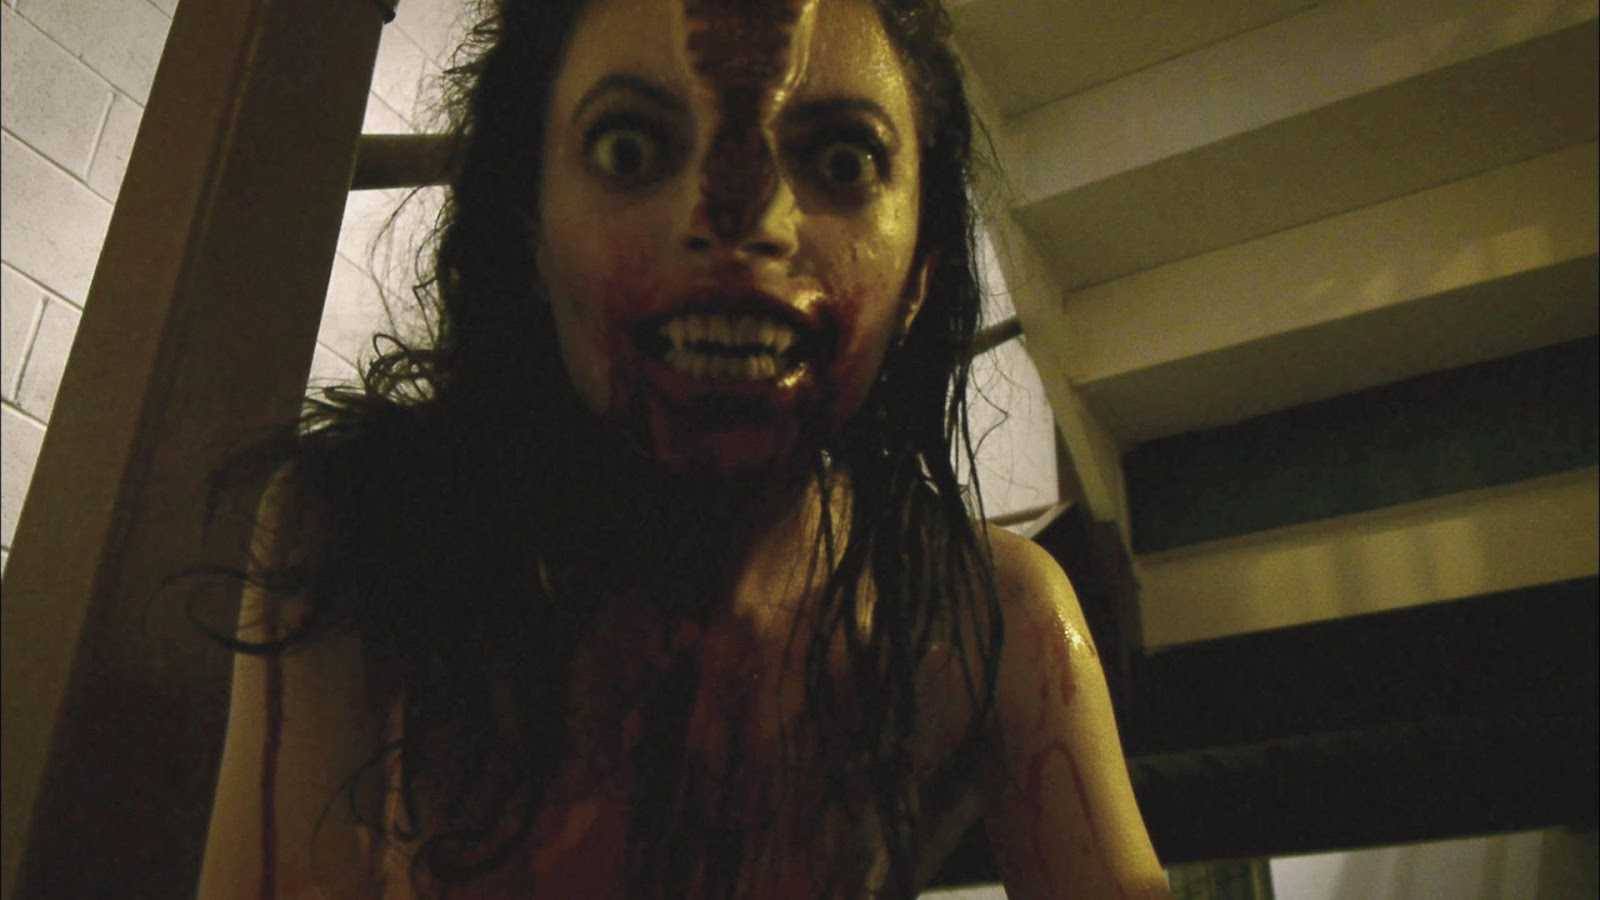 V/H/S Spinoff Will Feature Original Actress | v/h/s